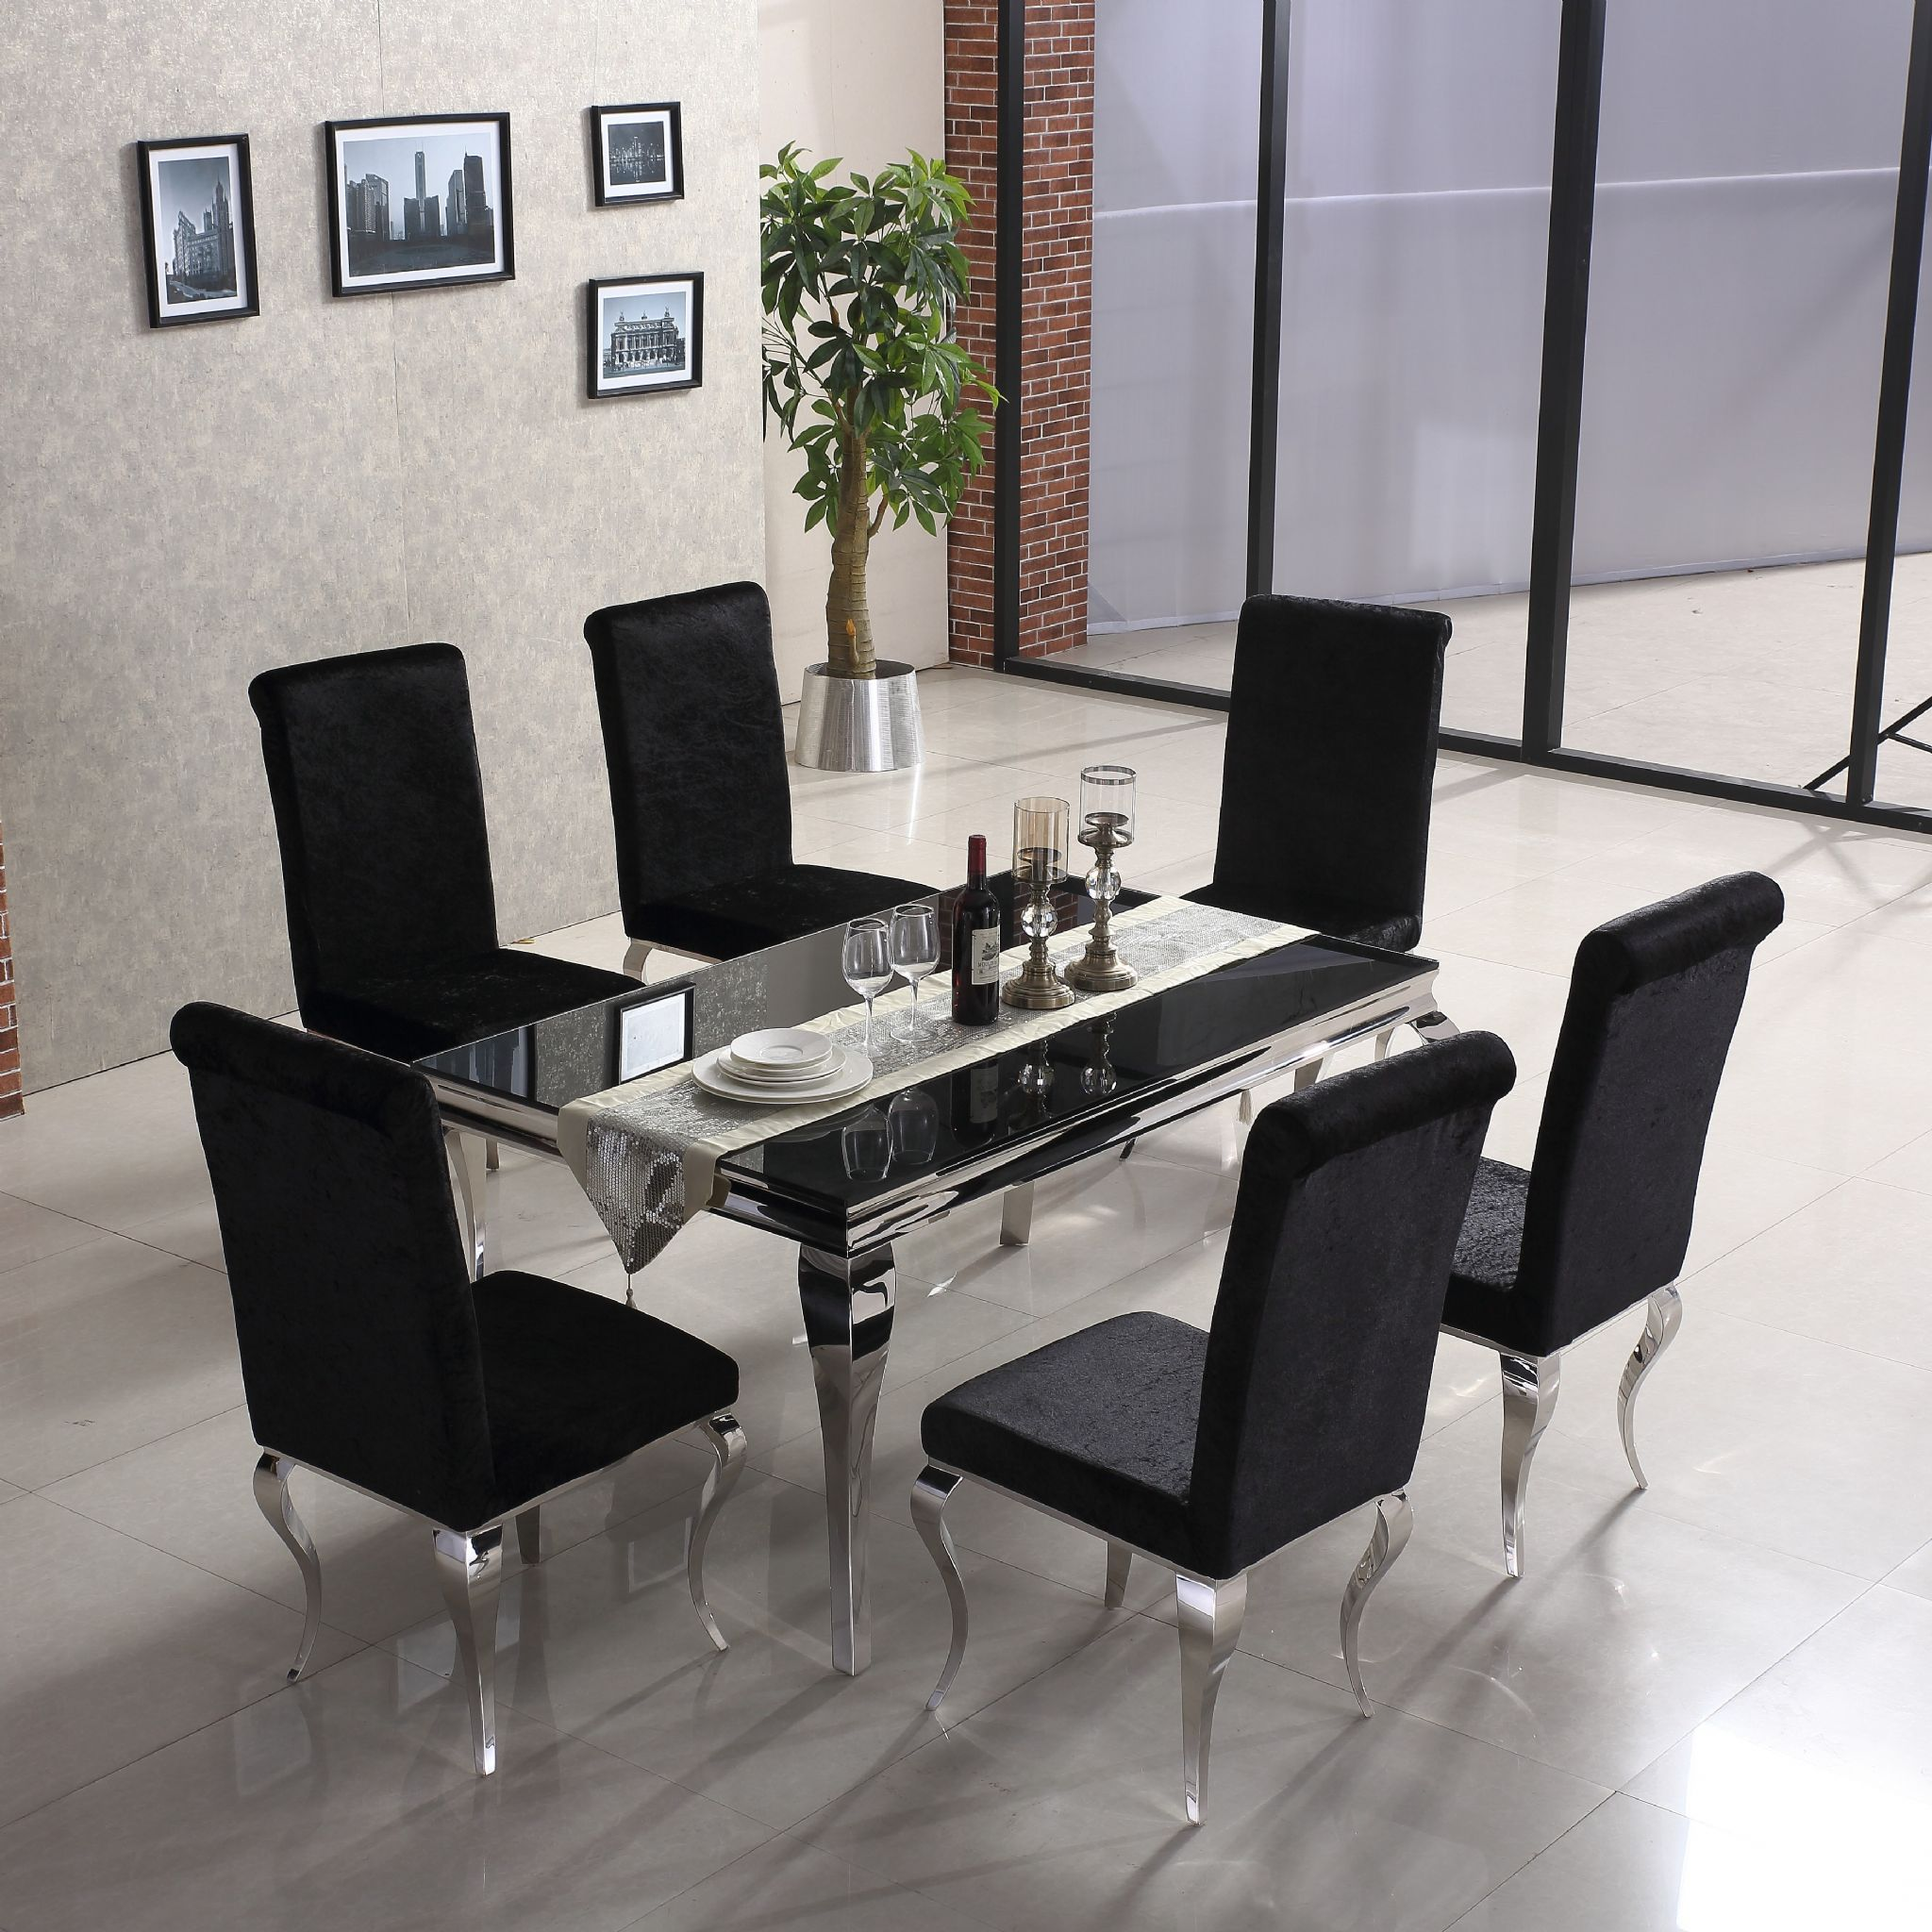 Clarissa Black Chrome Dining Table 75424 P Jpg 2048 2048 Black